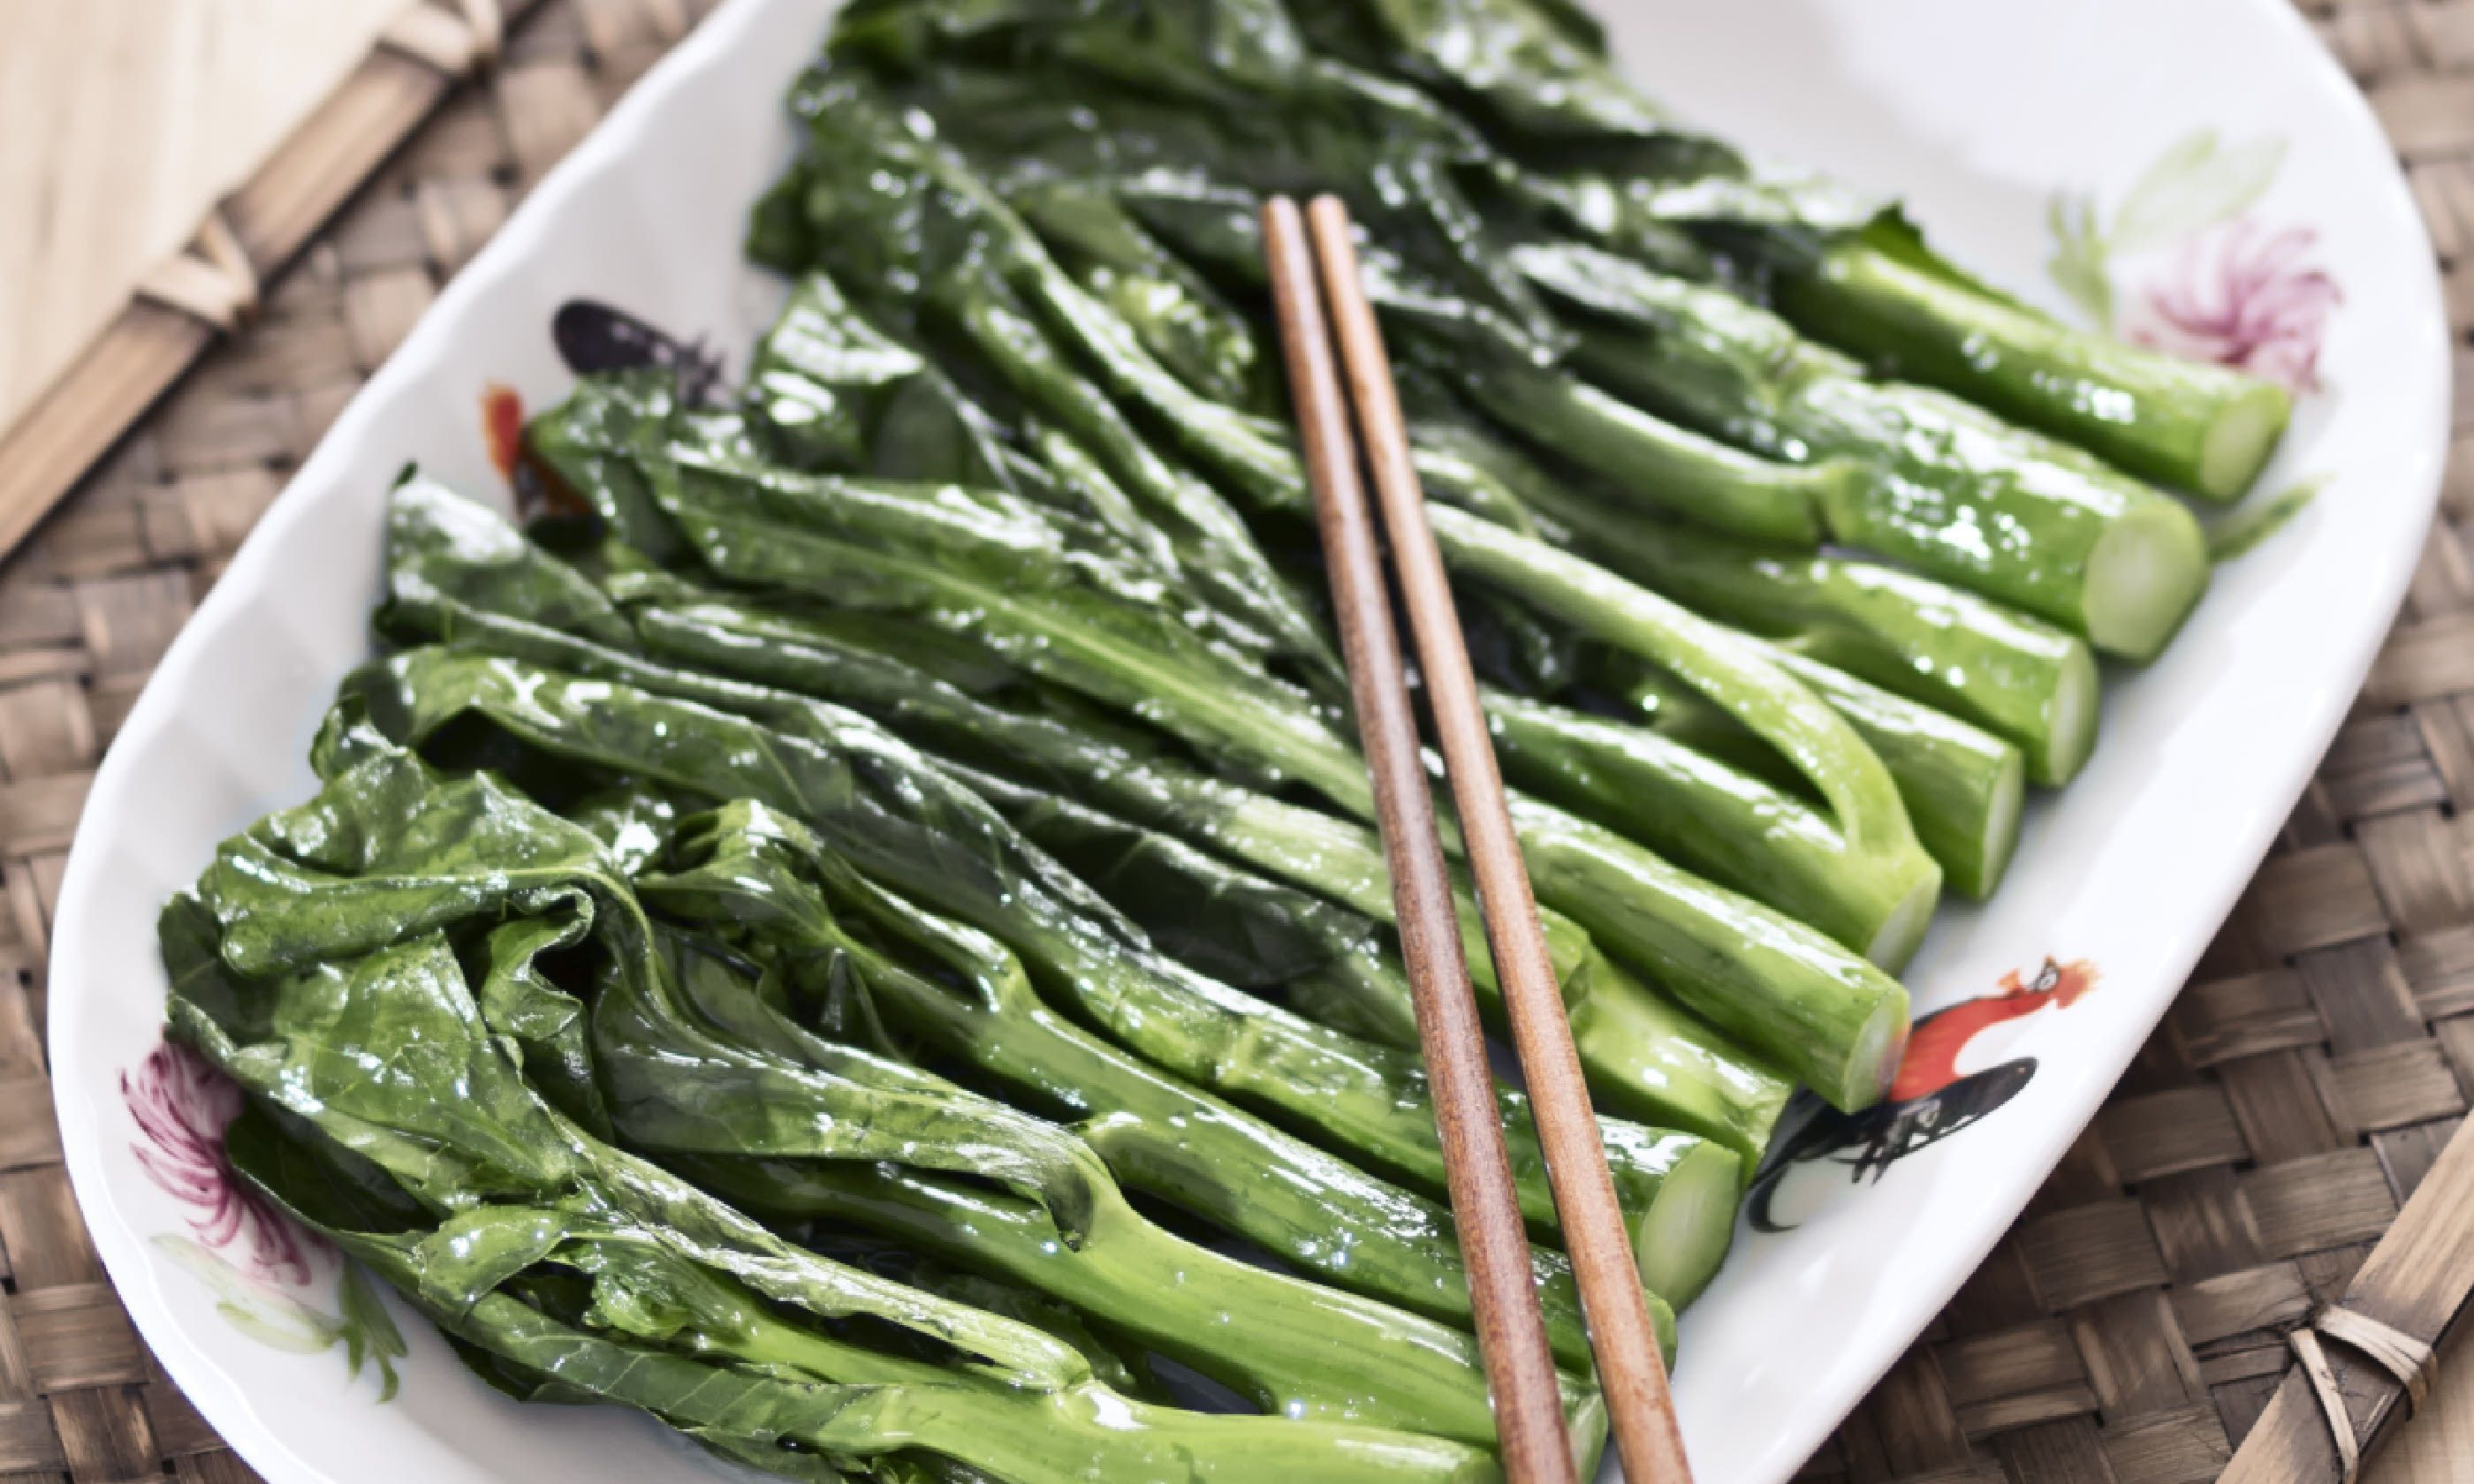 Chinese broccoli (Shutterstock)